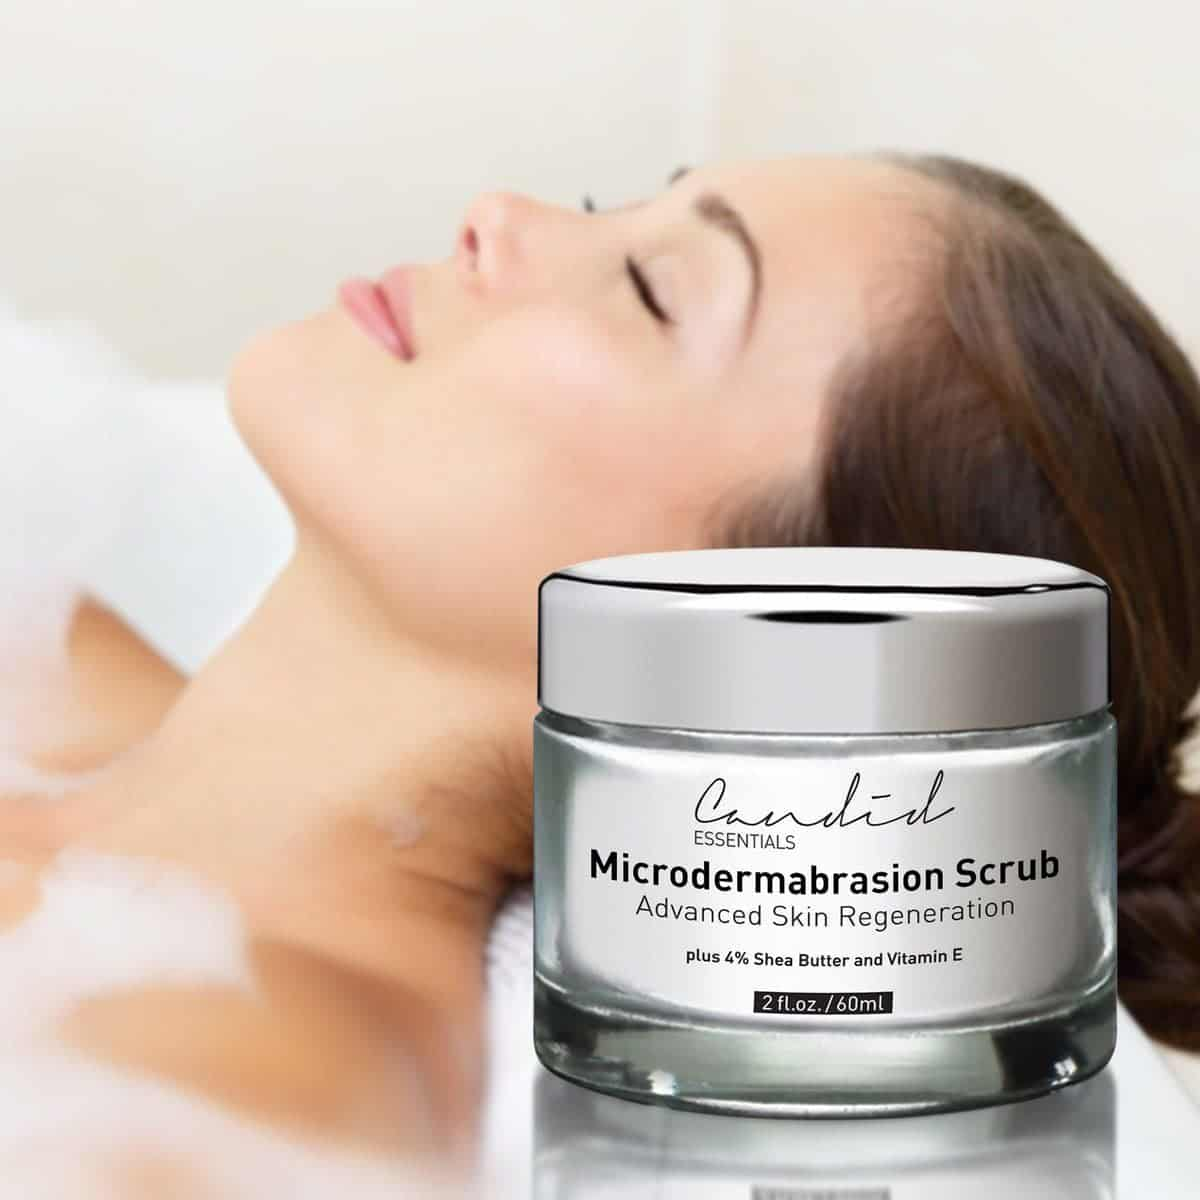 Most Professional Candid Essentials' Advanced Microdermabrasion Scrub in Foreground